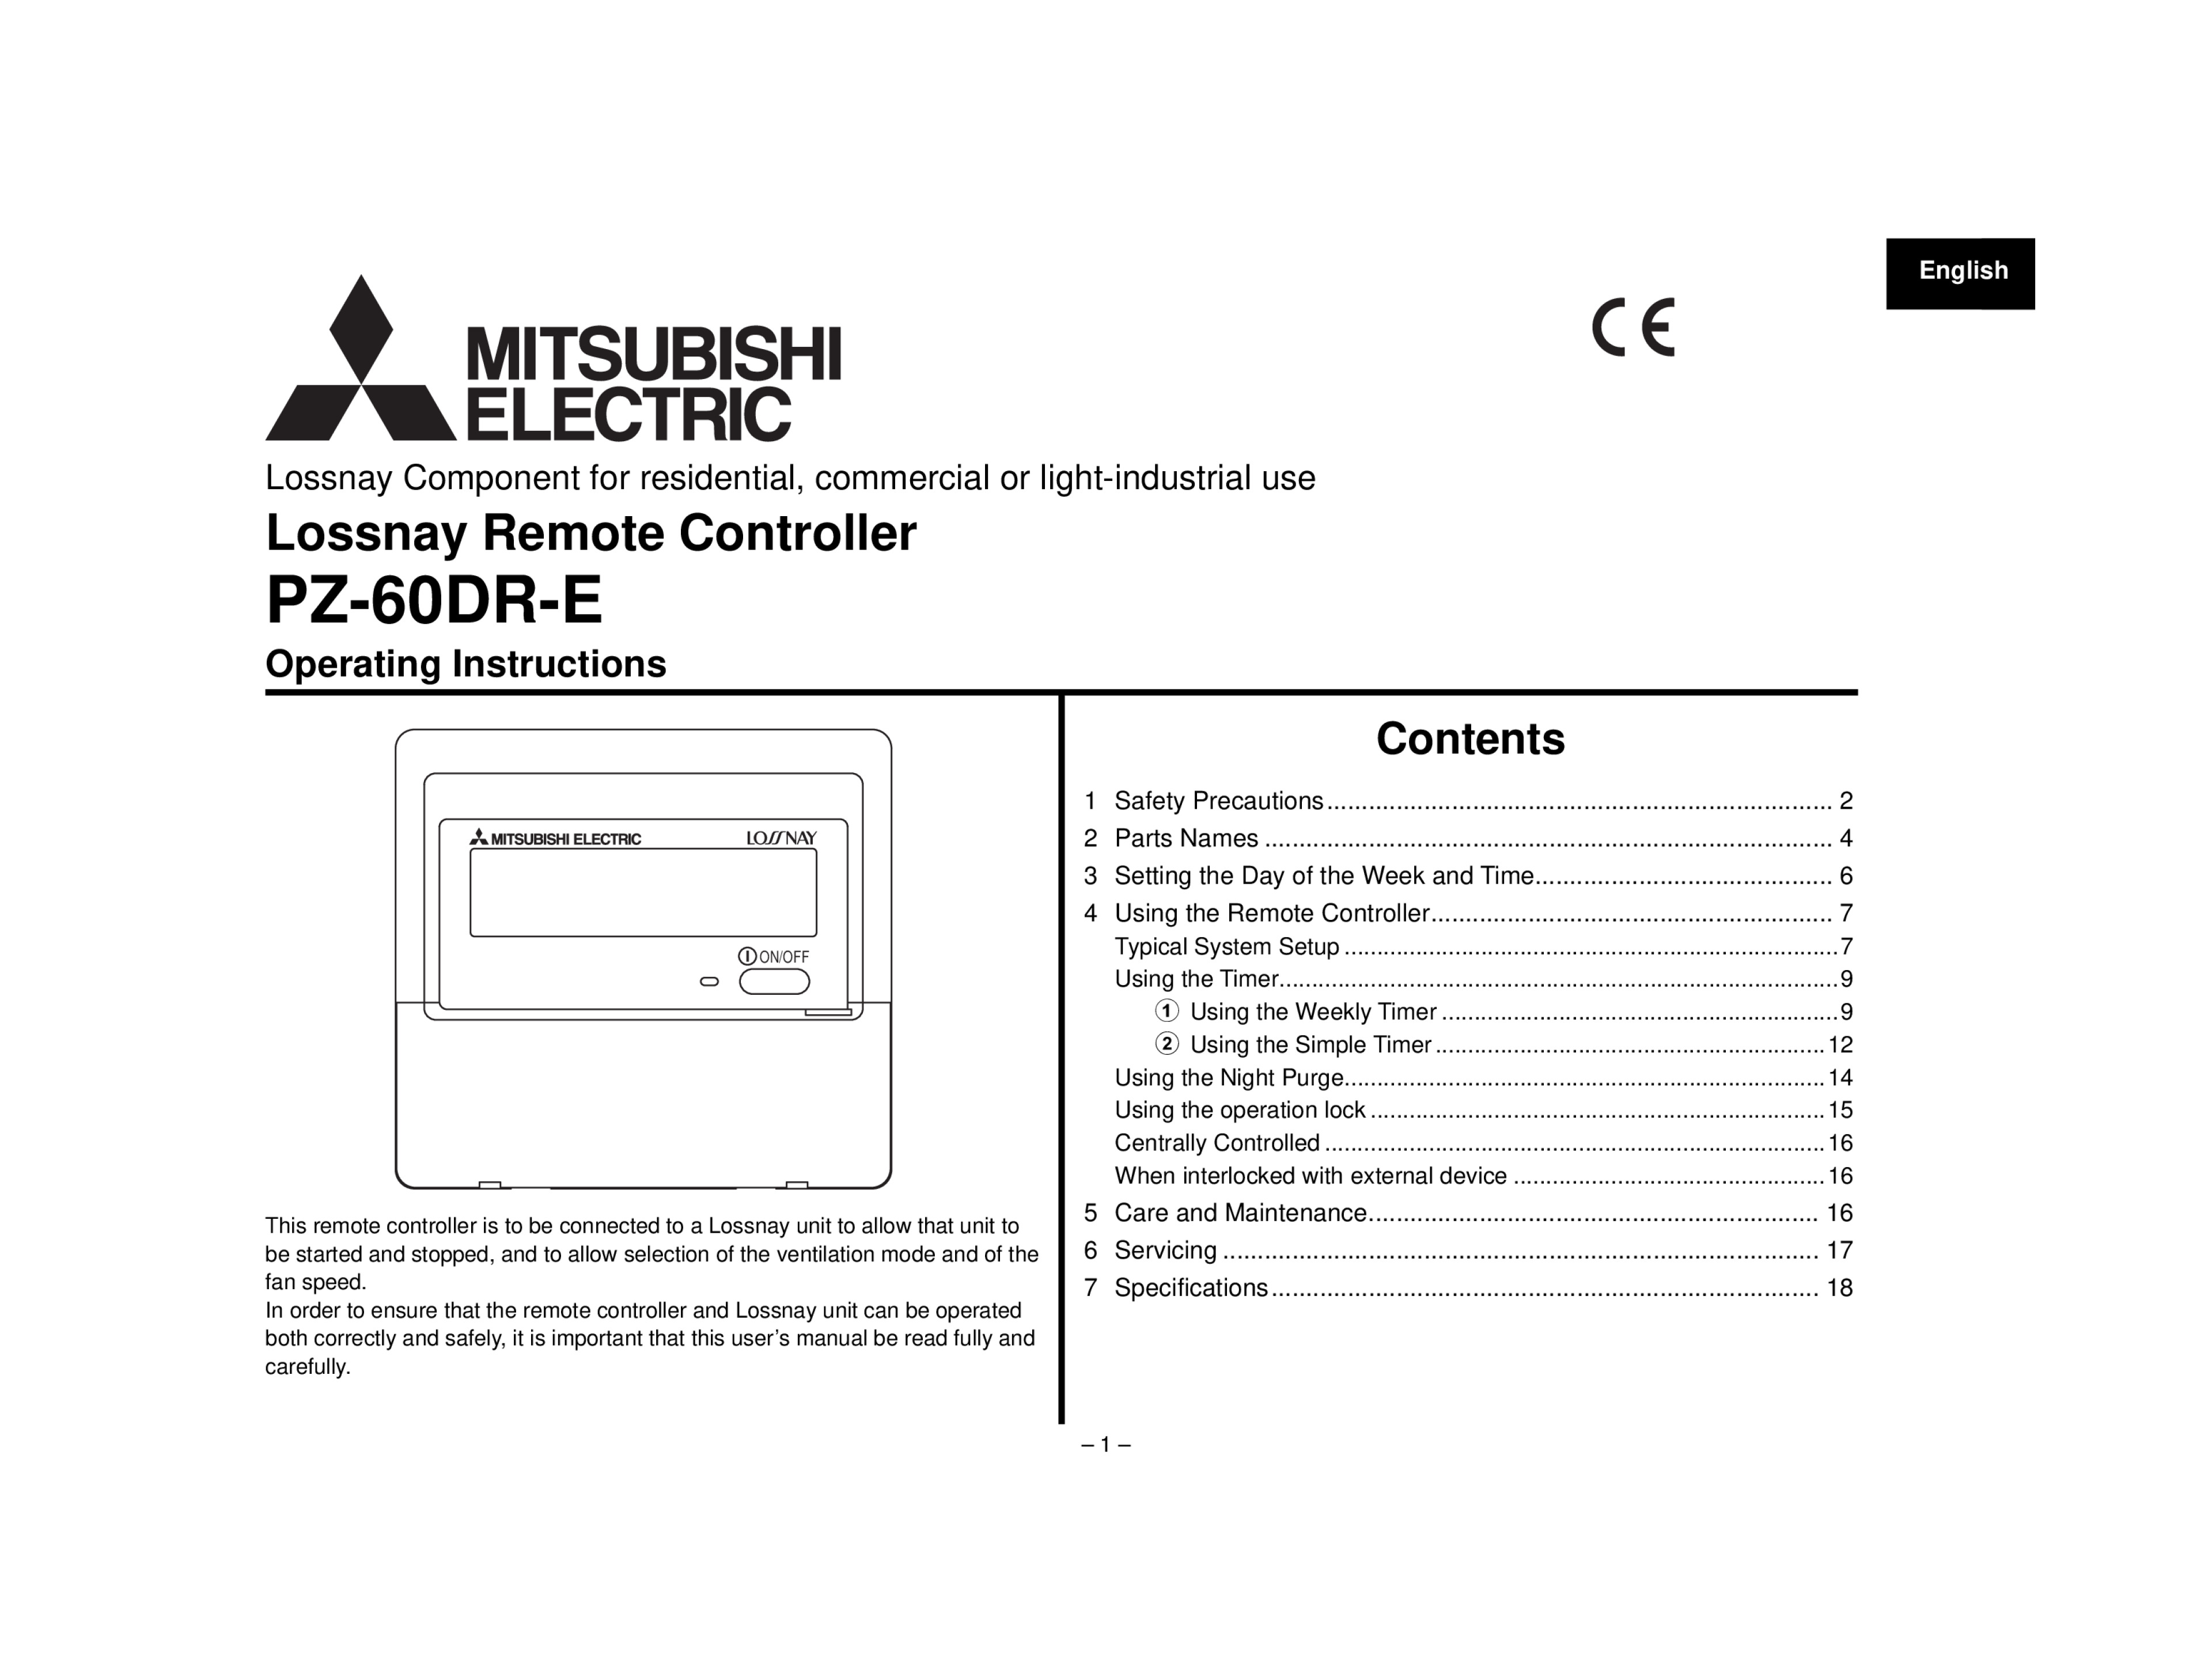 Pz 60dr e lossnay controller operation manual mitsubishi electric page 1 zoom in buycottarizona Choice Image